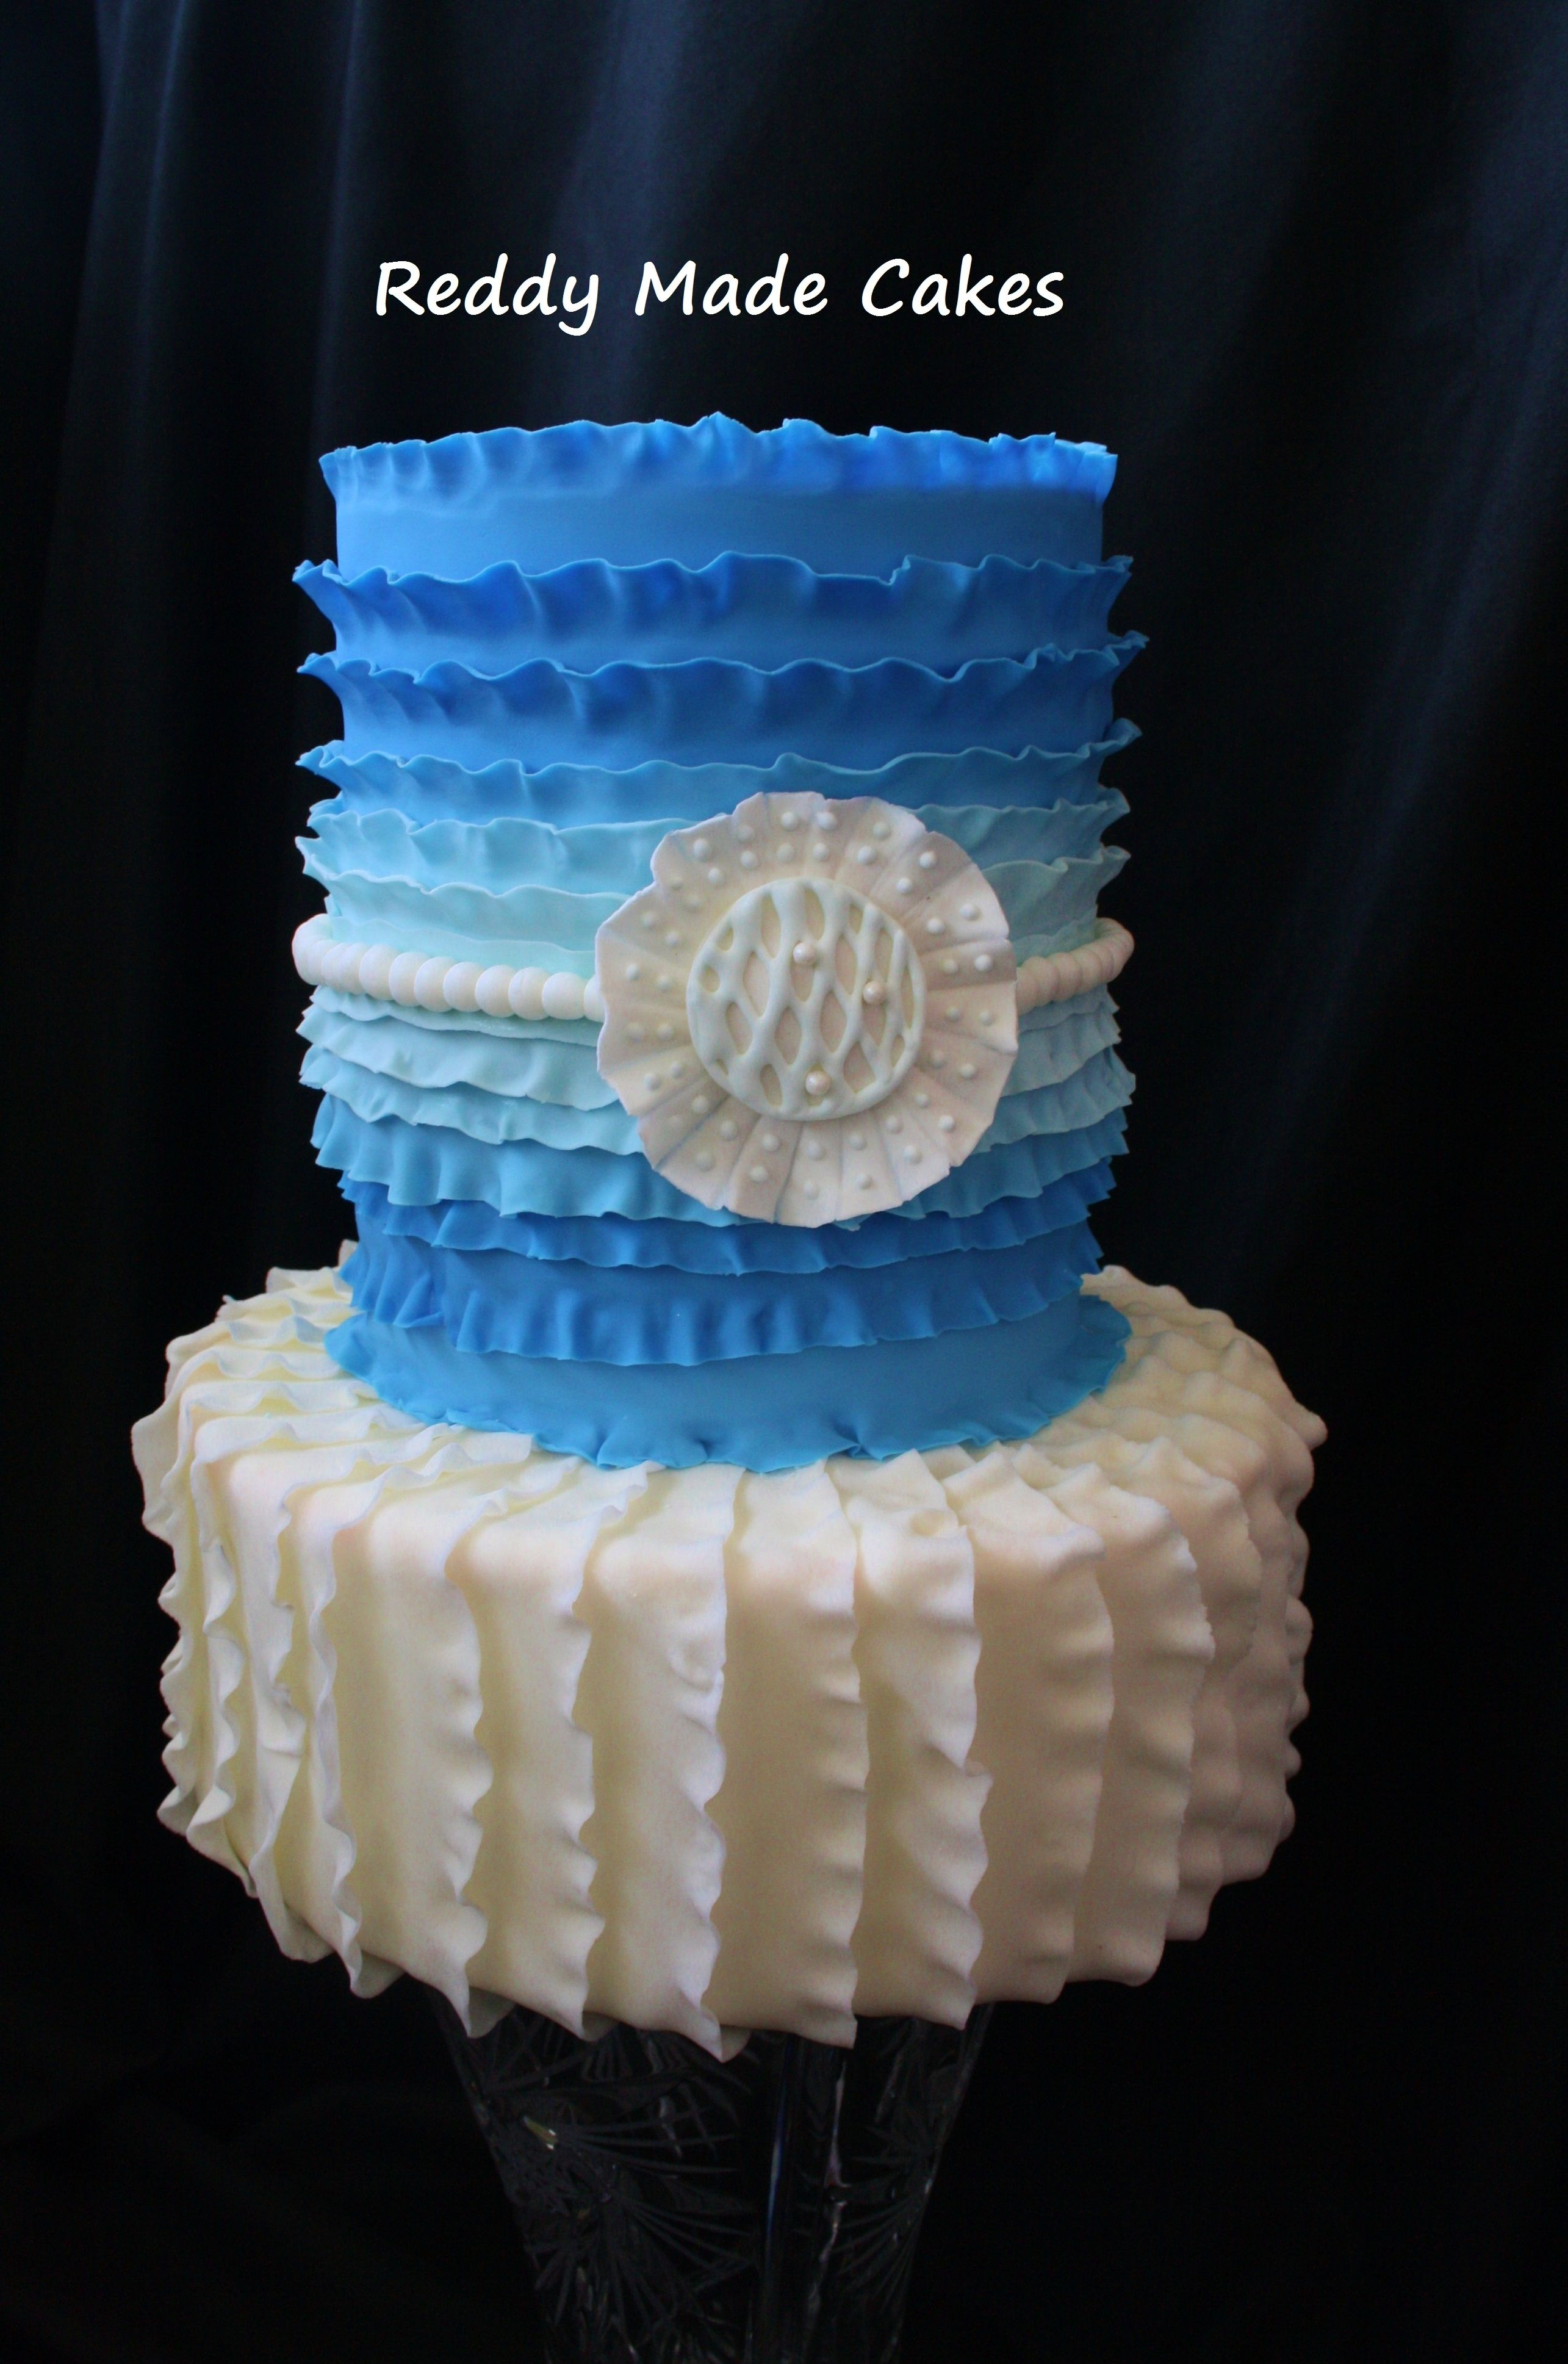 Wedding Cake Not Your Mothers Cakes Anymoreding Cakes